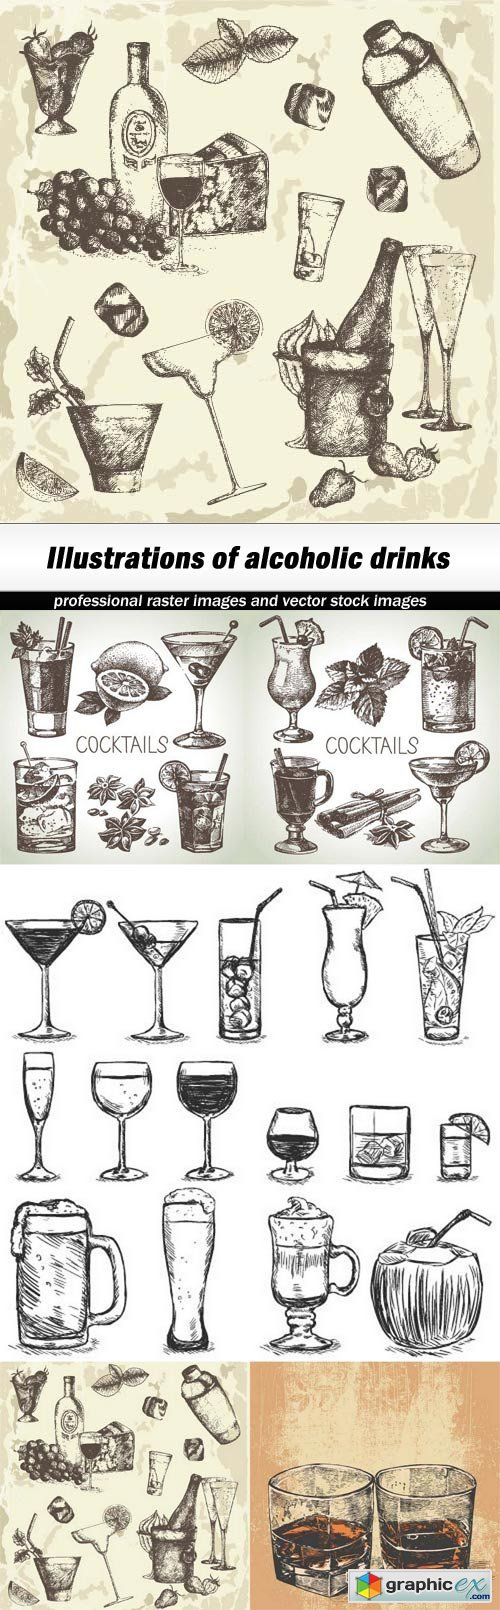 Illustrations of alcoholic drinks